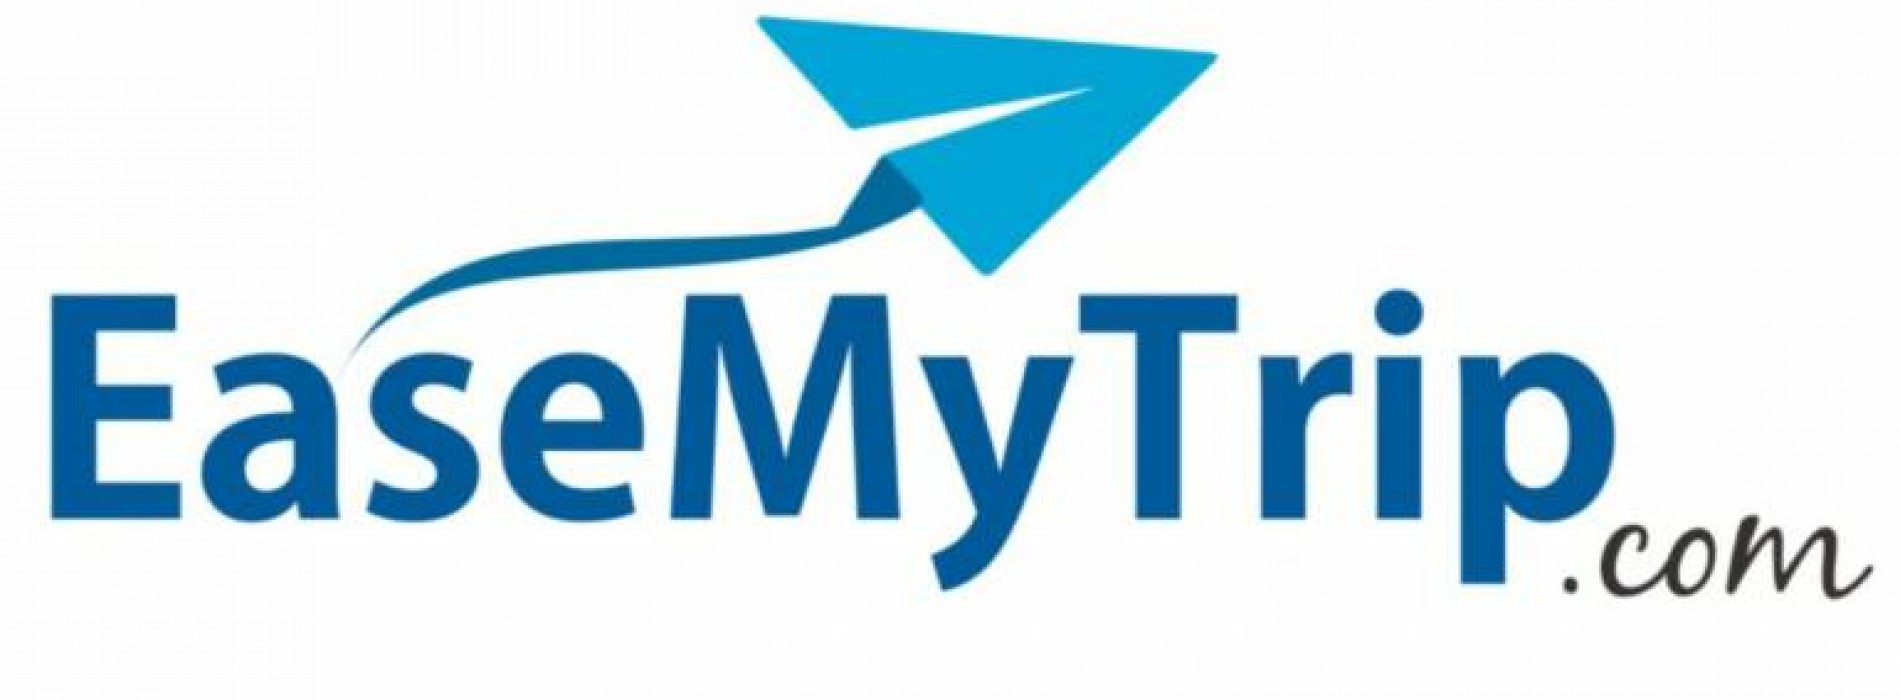 EaseMyTrip ties up with over 450 NRIs across all major cities of the world